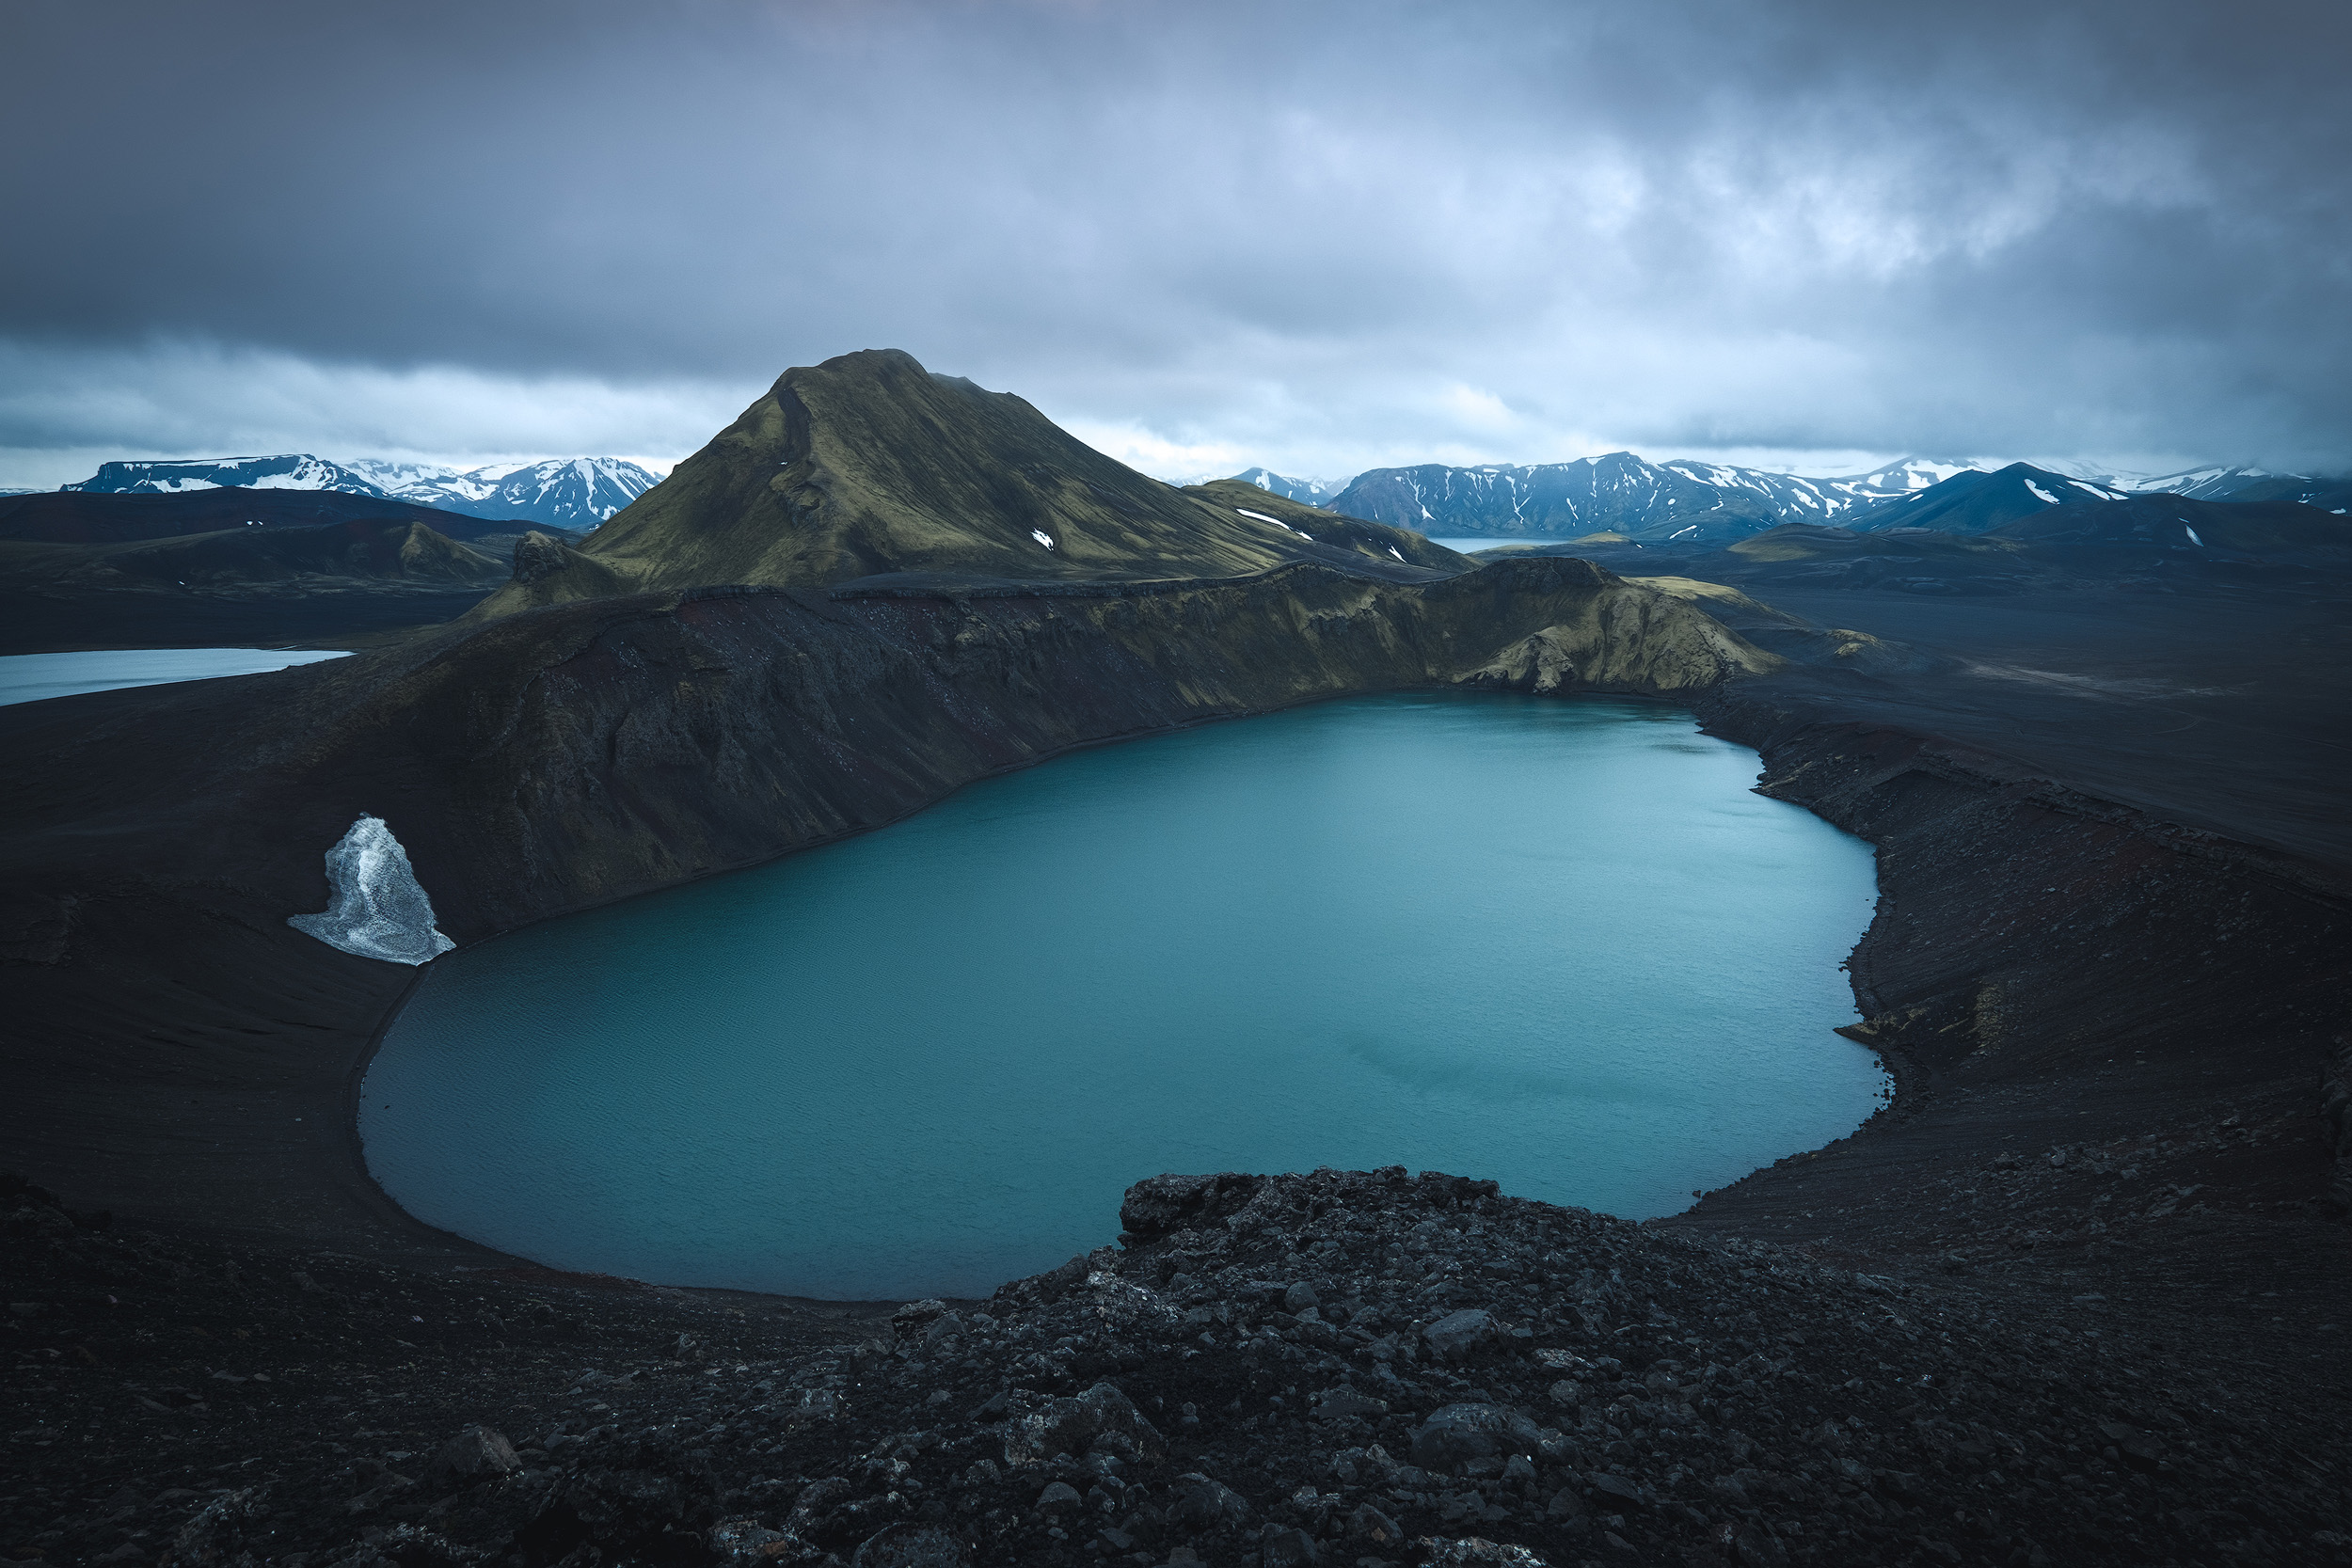 Hnausapollur Crater  The incredible blue water of the Hnausapollur crater lake in the Iceland Higlands. I scrambled up here sometime before sunrise on the recent Iceland workshop to get an elevated view of this awesome place. Photos can't really do justice to how big this lake is, nor how high up were to shoot it.